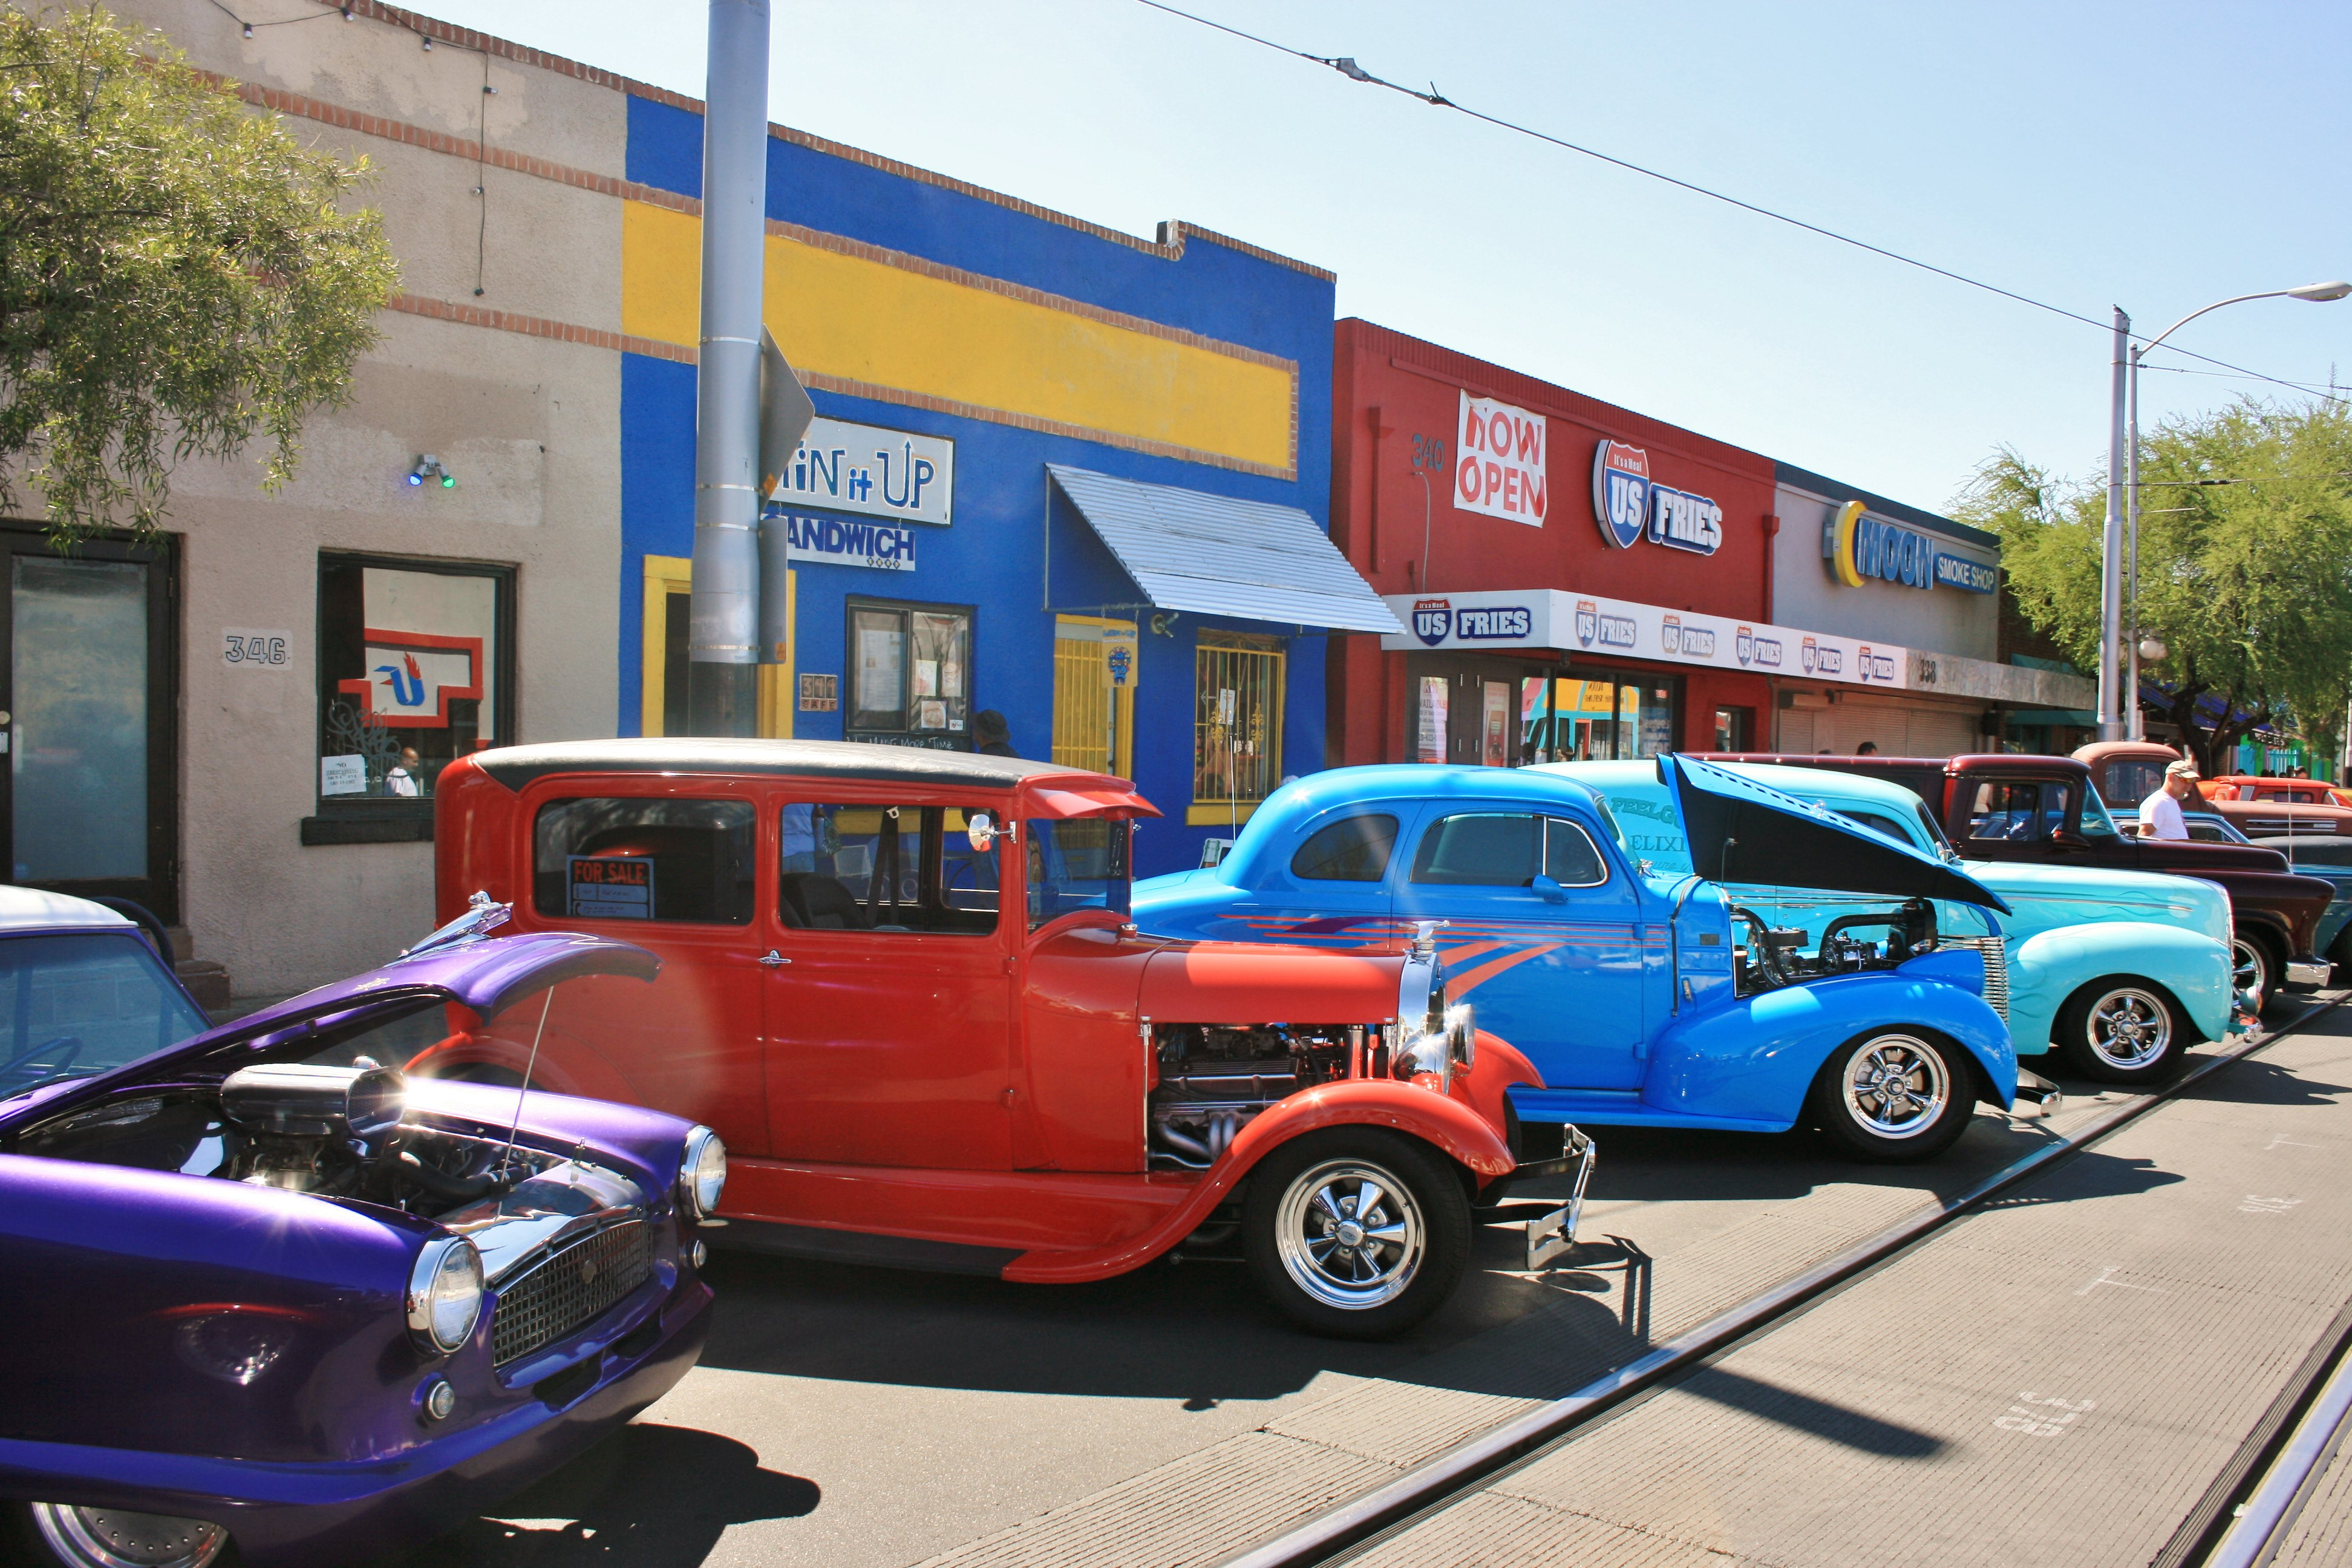 Rd Annual Rodders Days Car Show Tucson Street Rod Association - Car show tucson today